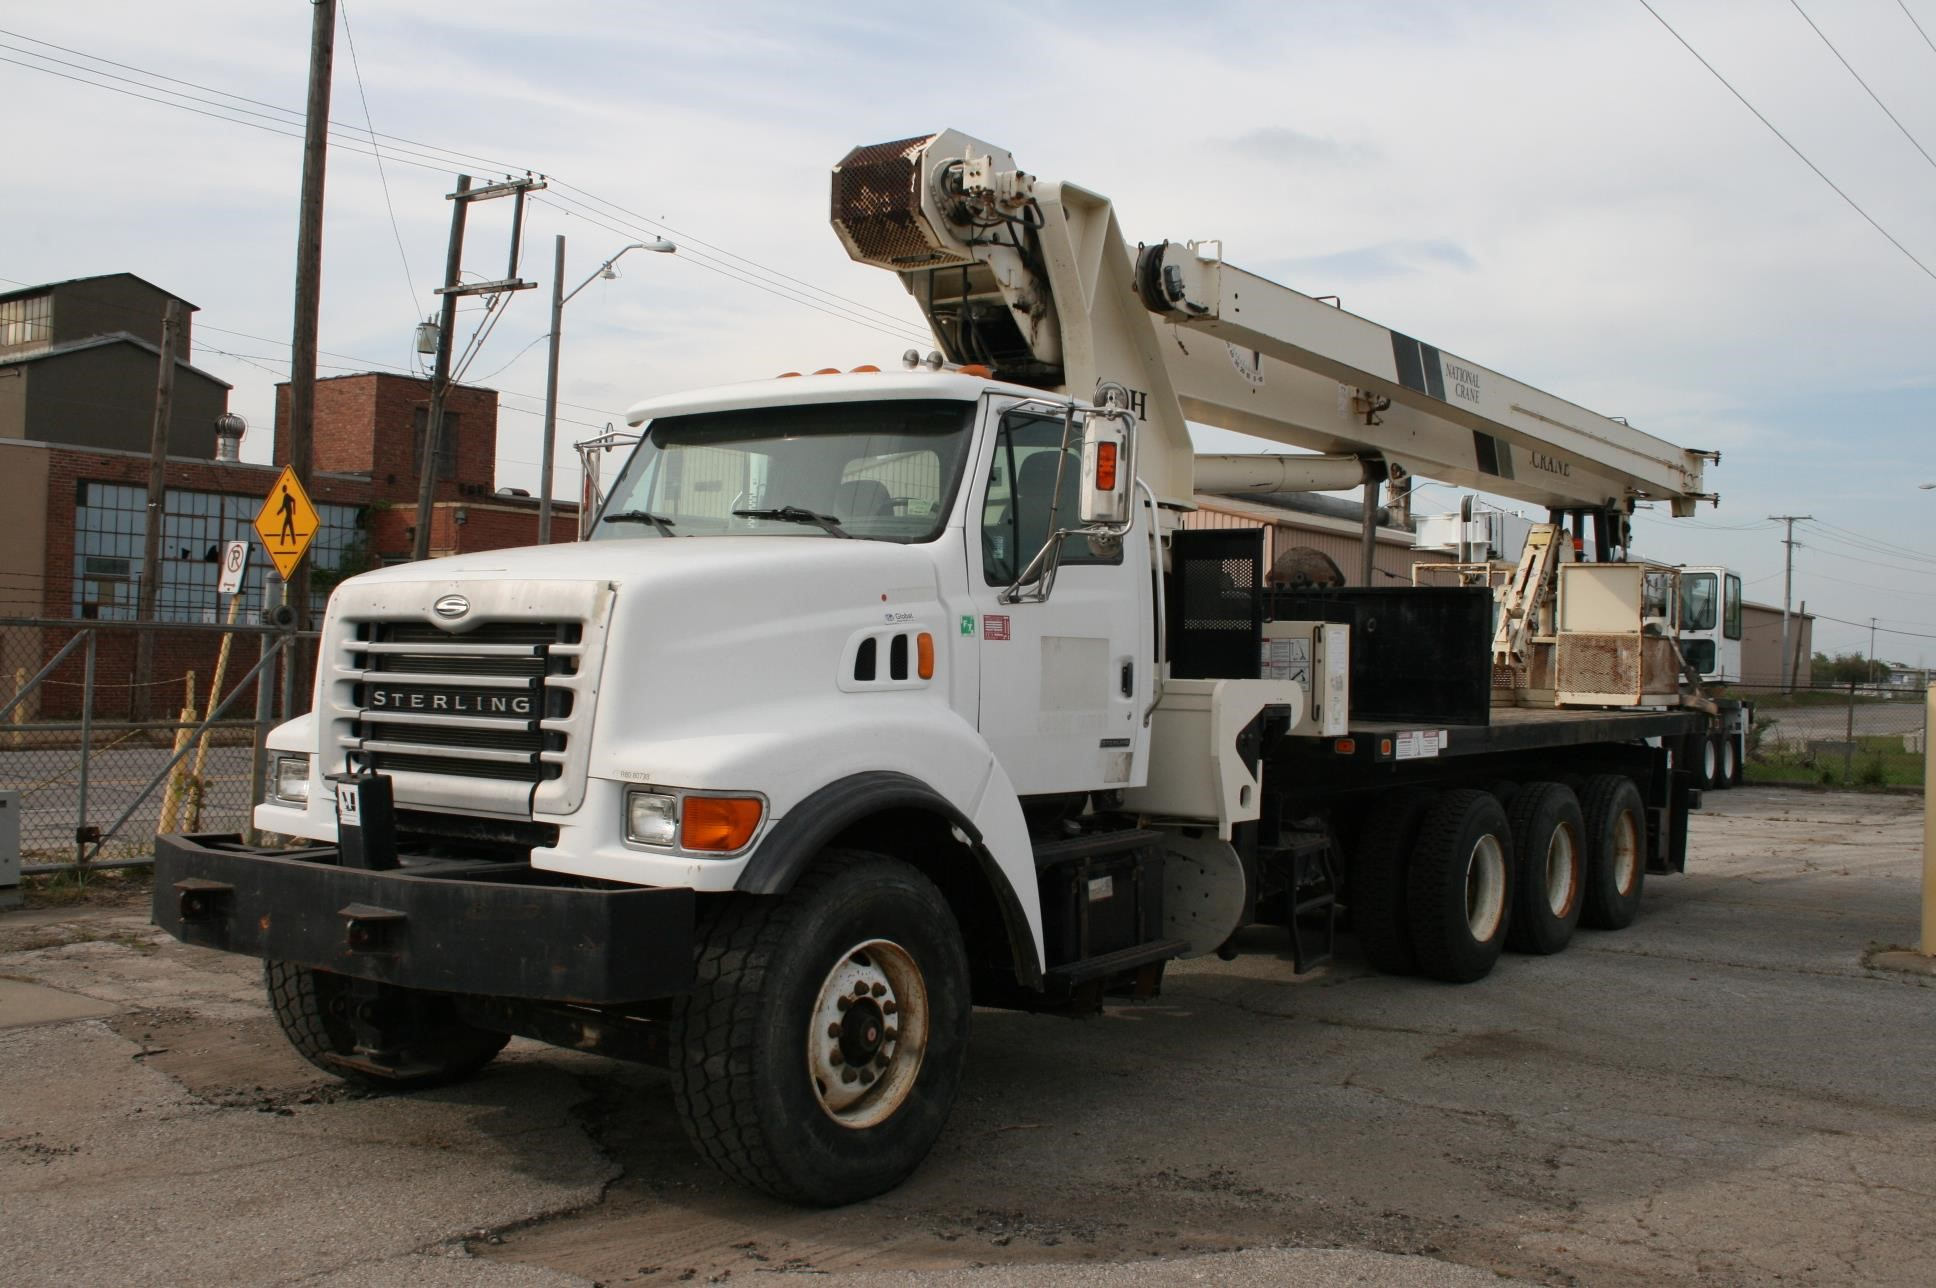 2003 NATIONAL 14127H MOUNTED ON 2003 STERLING LT9500 For Sale in Kansas  City, Missouri